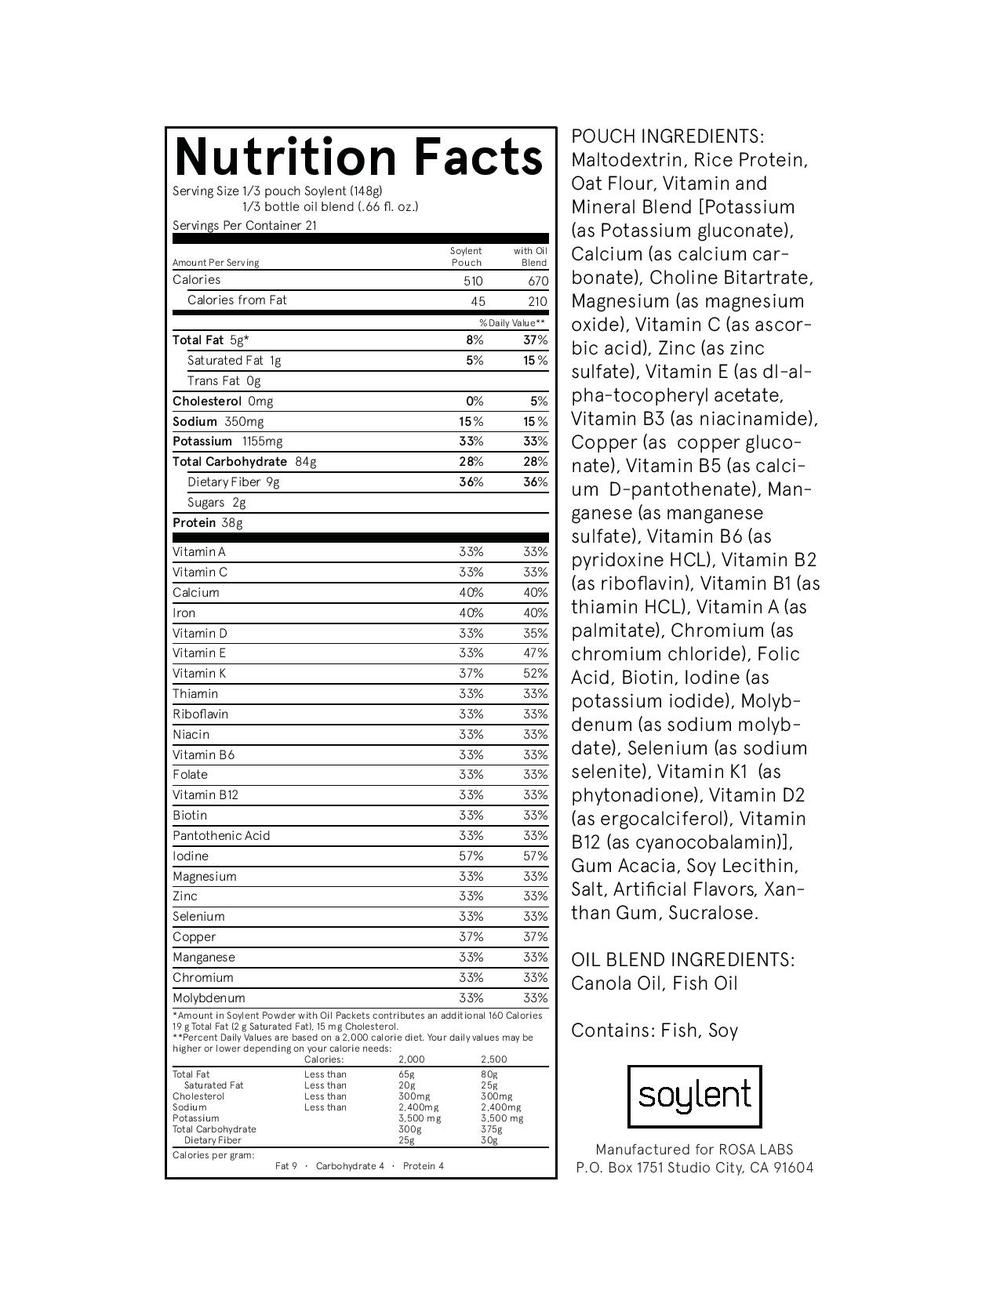 The ingredient list of Soylent - I think I need a nap after reading it.